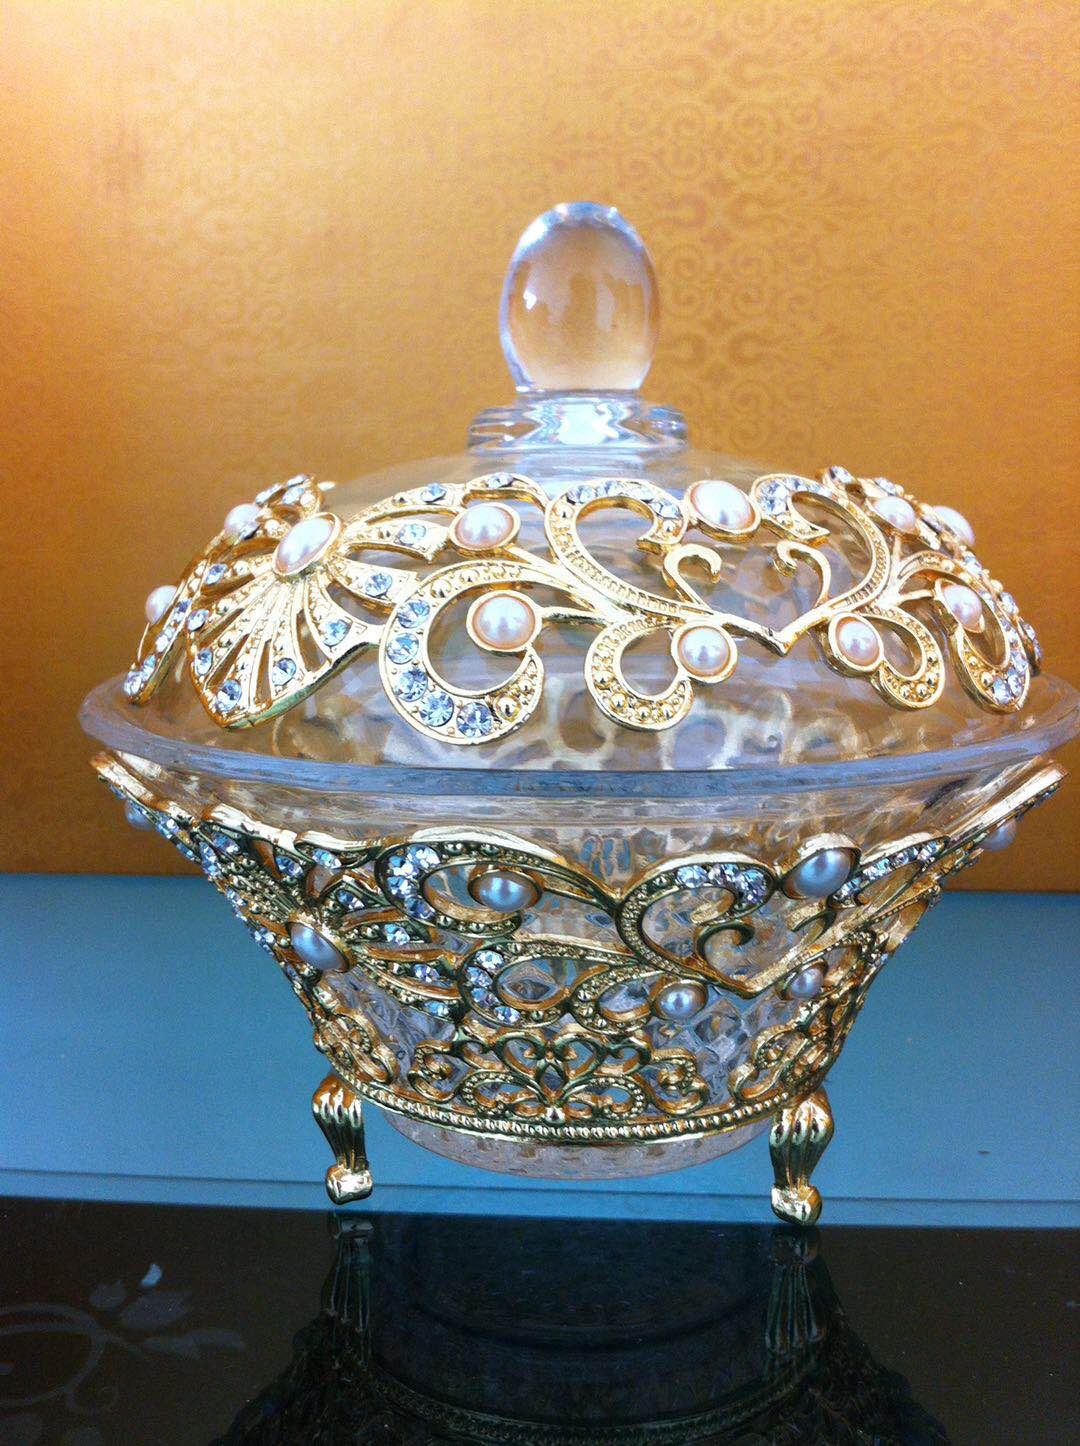 Glass sugar bowl with ZAMAC decoration